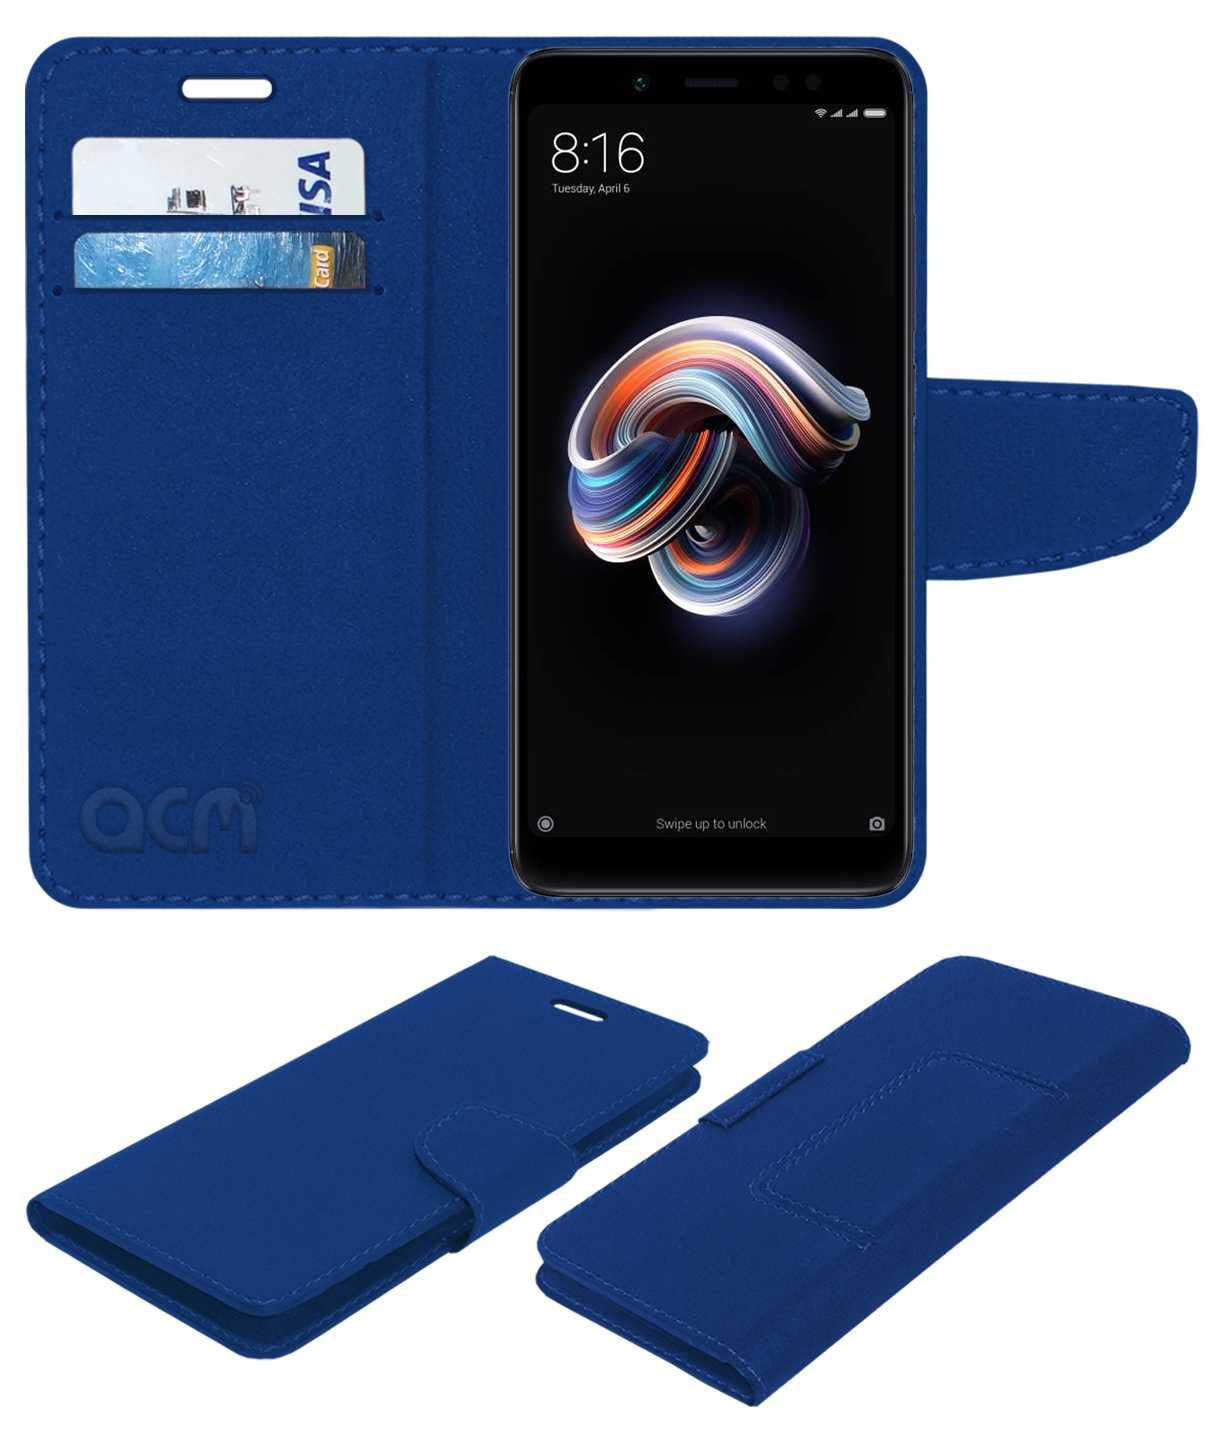 reputable site 0c334 704a1 Xiaomi Redmi Note 5 Pro Flip Cover by ACM - Blue